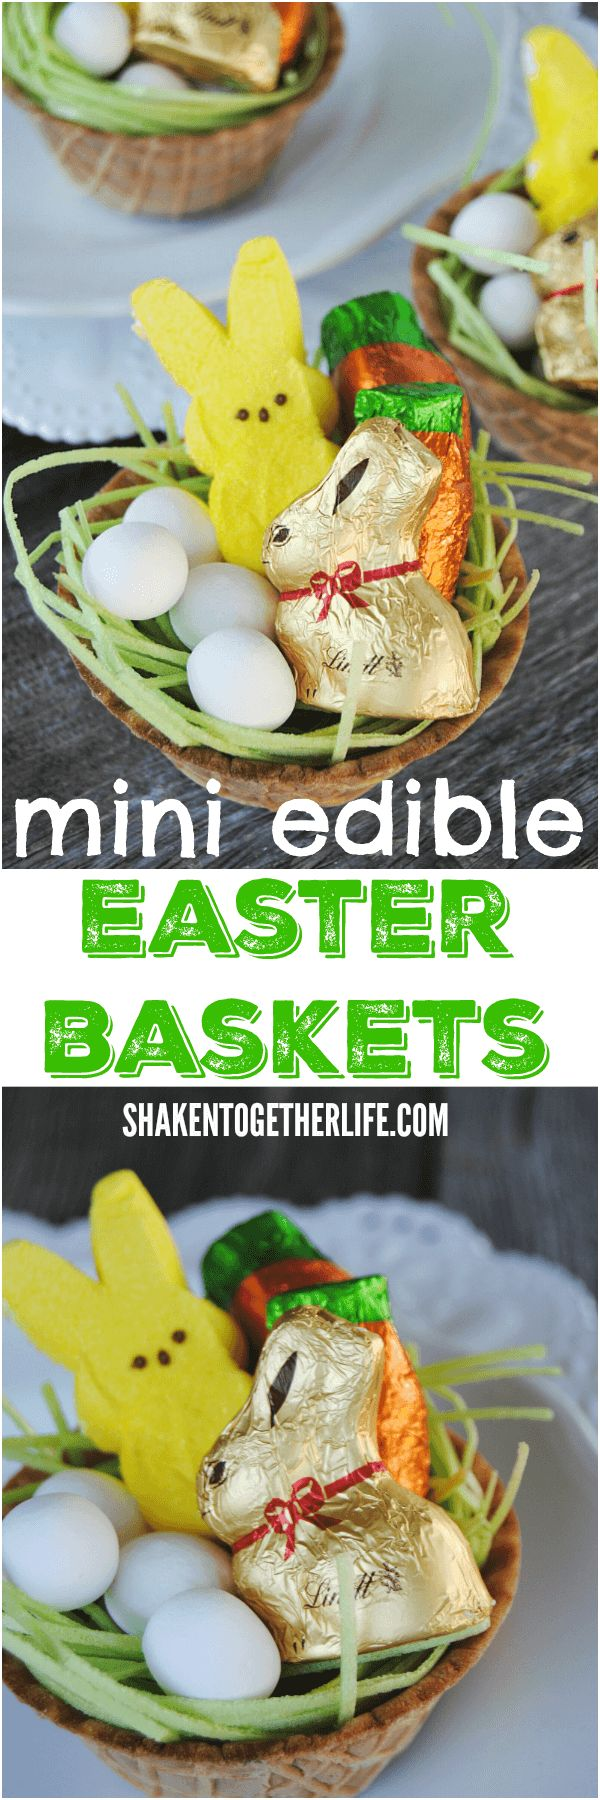 Mini Edible Easter Baskets! Each little 'basket' is filled with goodies and even edible Easter grass - great activity for the kiddos! These would make such cute place holders for Easter dinner, too!